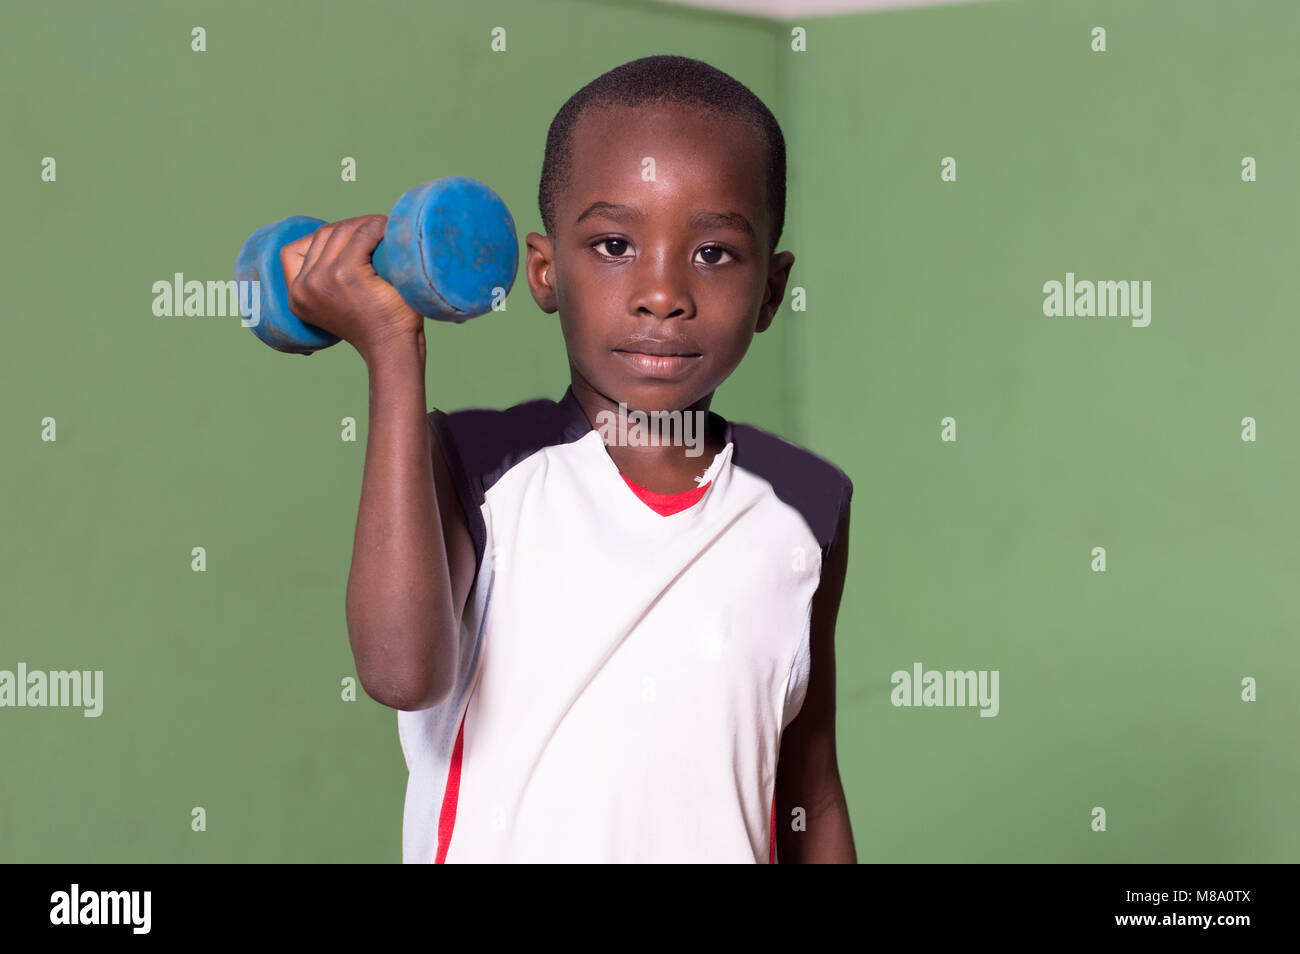 Child training to fitness in a gym by lifting weights. - Stock Image